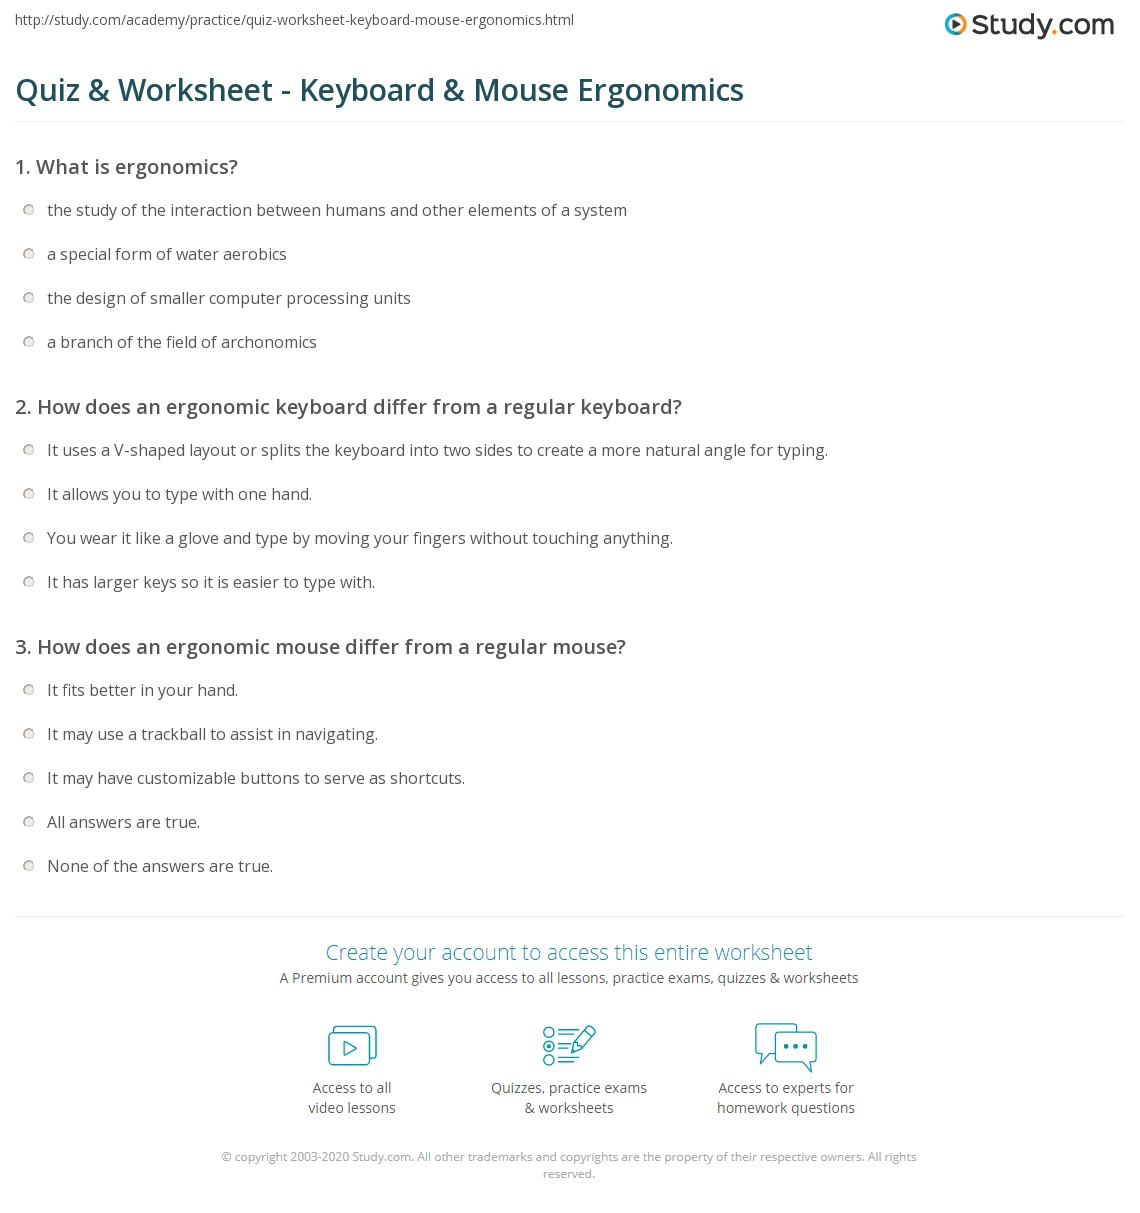 quiz worksheet keyboard mouse ergonomics. Black Bedroom Furniture Sets. Home Design Ideas